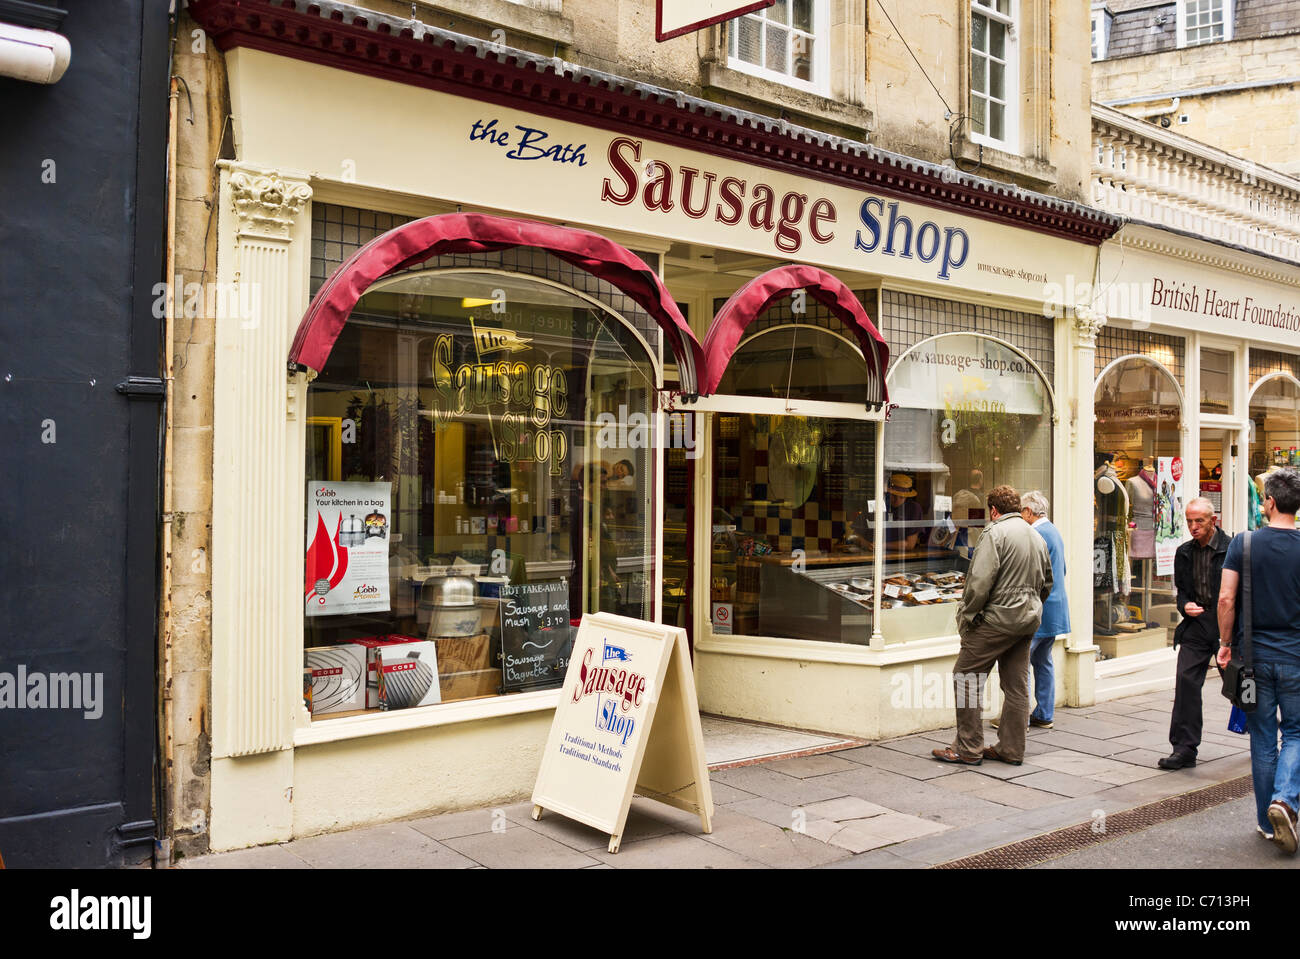 The Bath Sausage Shop UK Stock Photo: 38748265 - Alamy